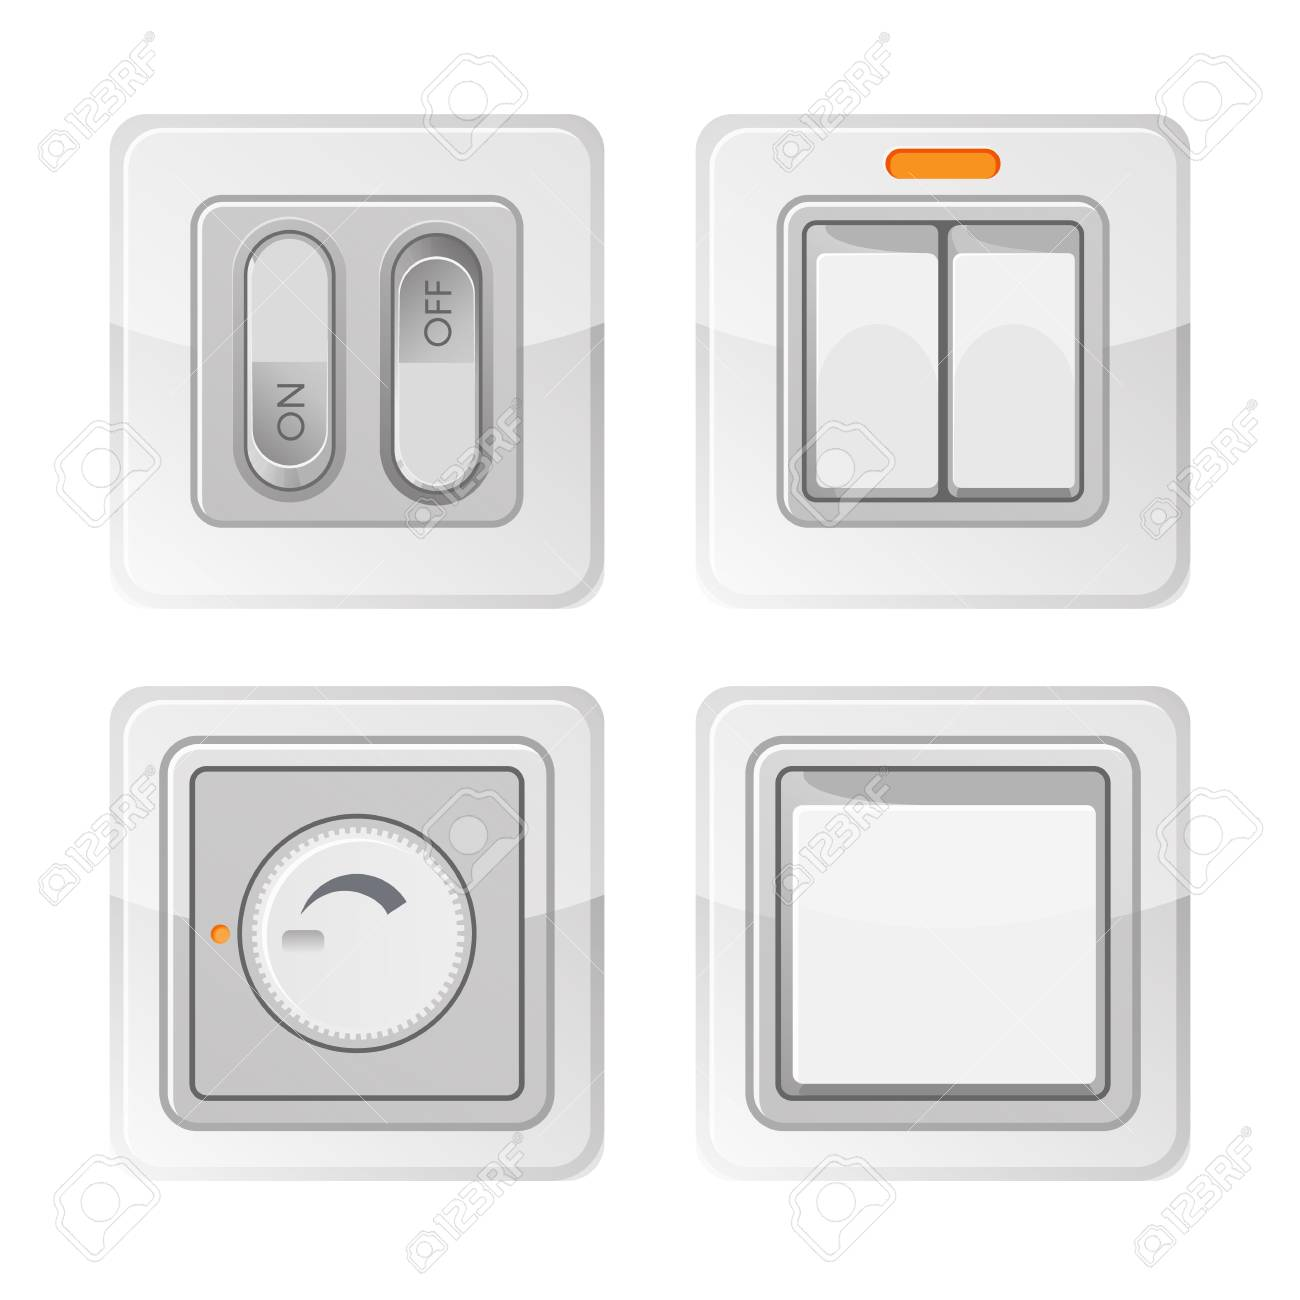 Miraculous Set Of Electric Power Switches With On Off Buttons Electrical Wiring Cloud Brecesaoduqqnet